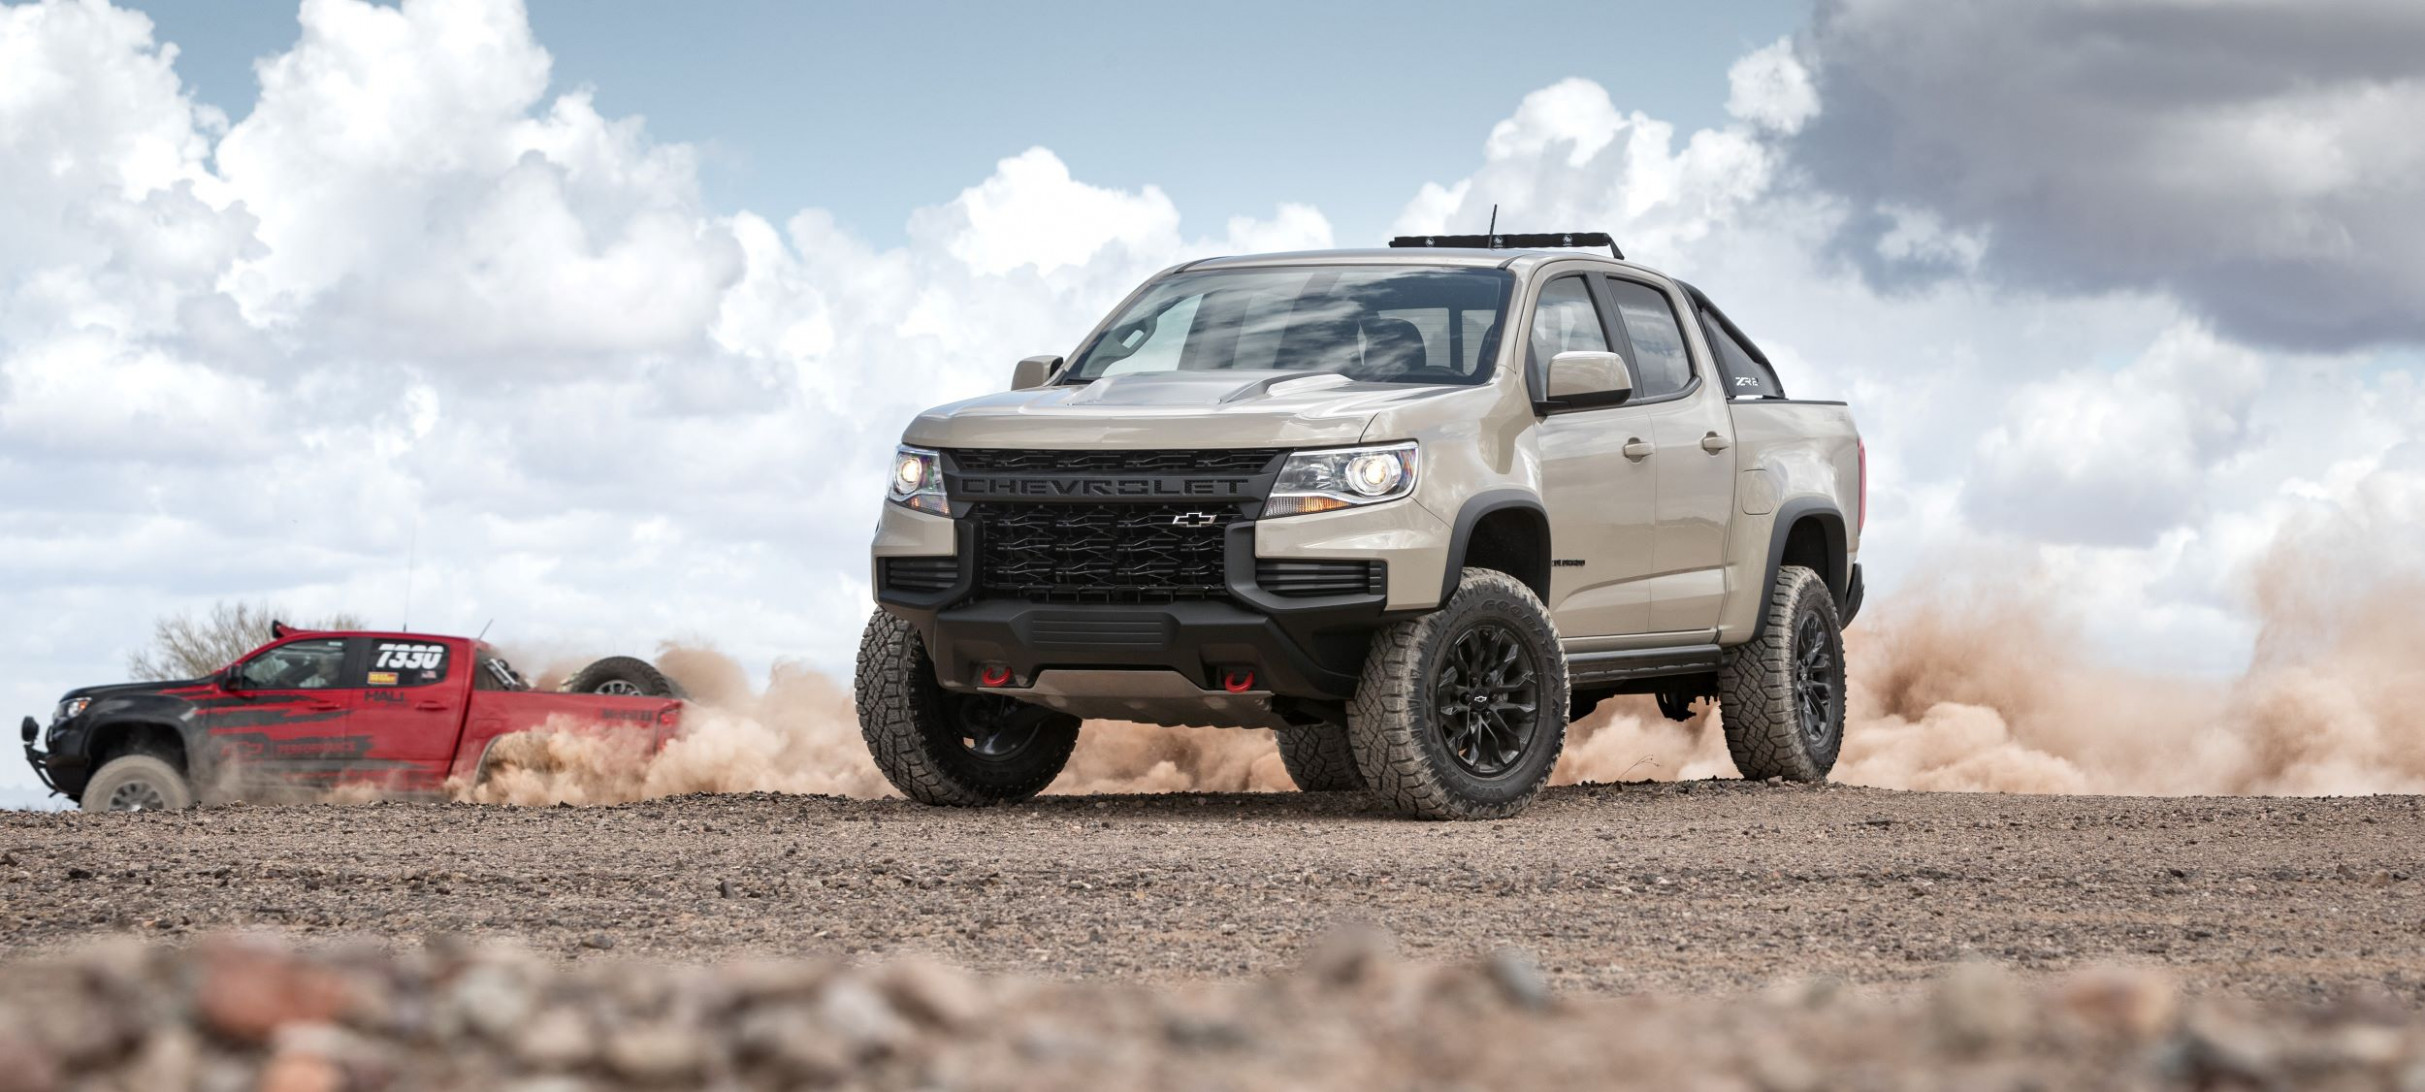 History 2022 Chevrolet Colorado Z72